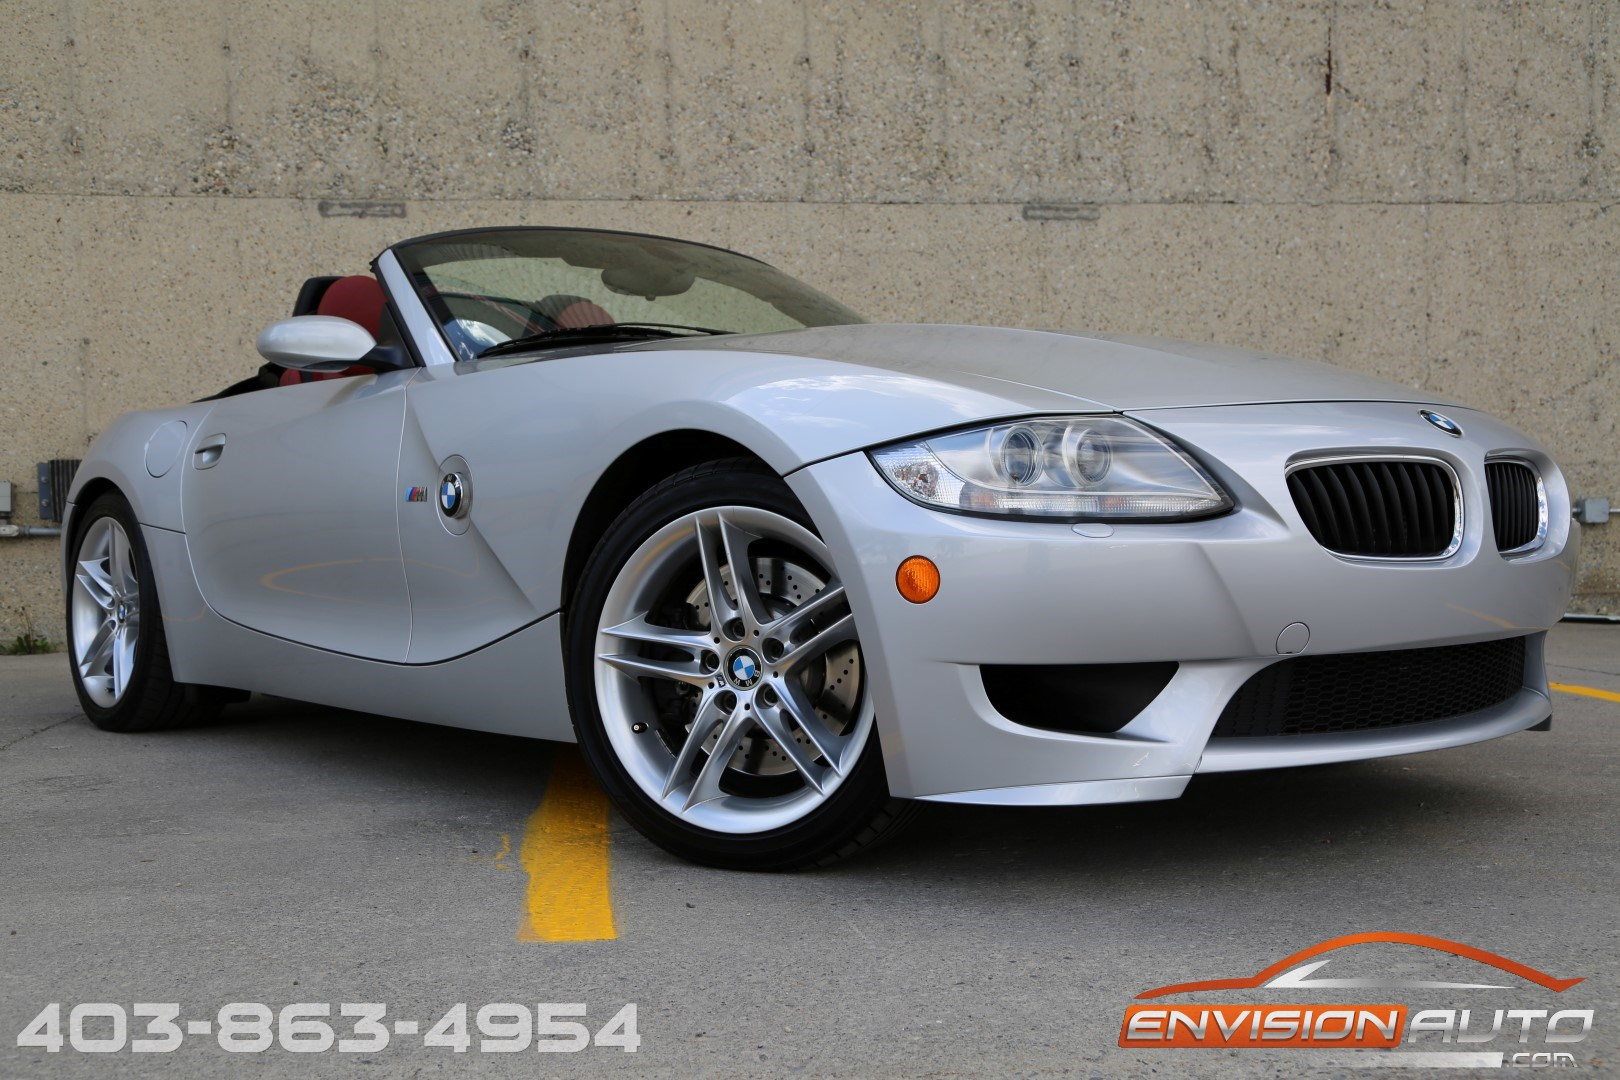 2006 Bmw Z4m 6 Speed M Roadster Envision Auto